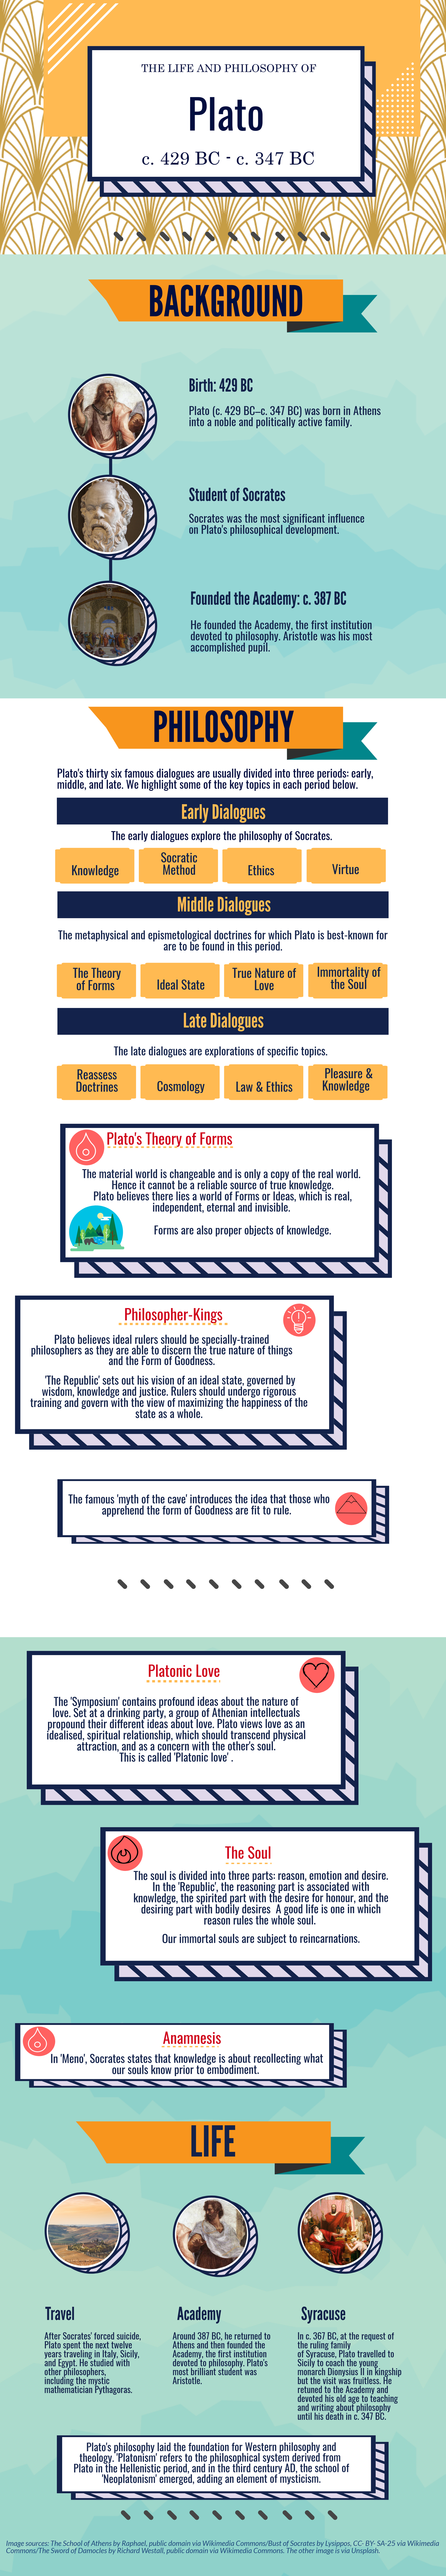 Philosopher of the Month: Plato [infographic]